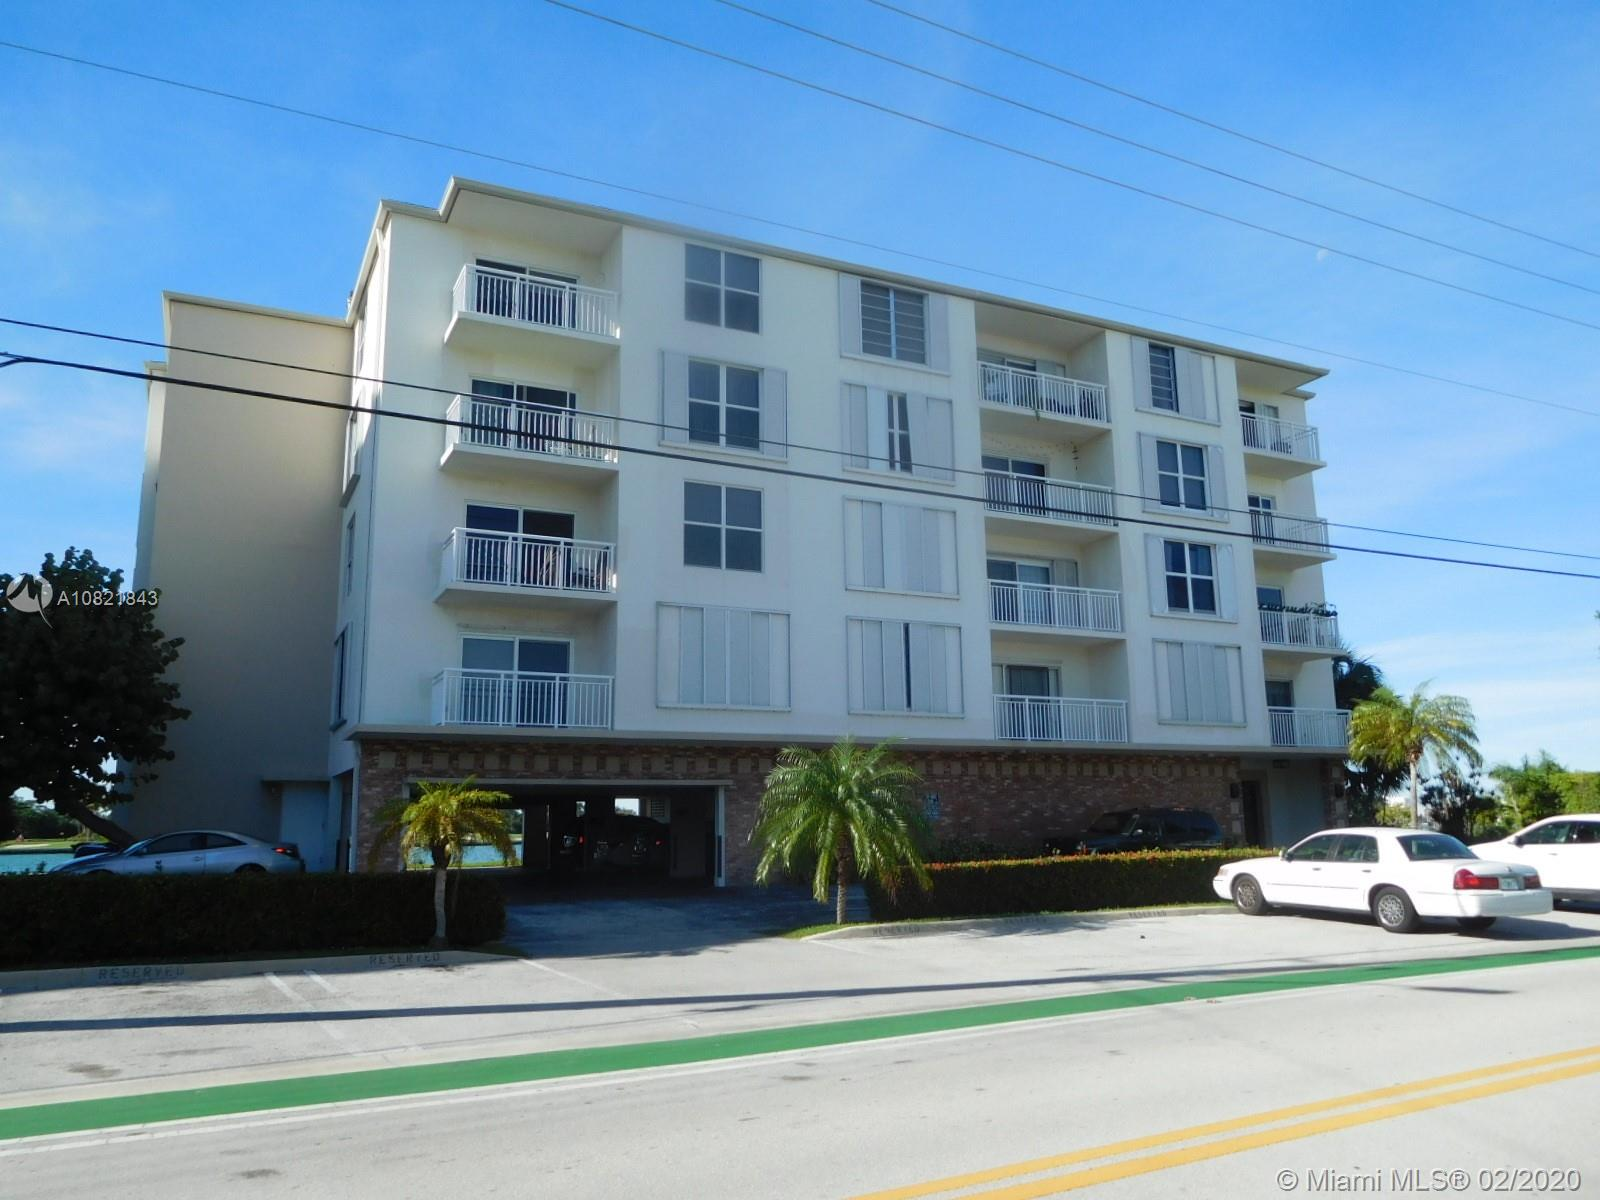 Welcome home to this spacious condo in the quaint community of Bay Harbor Islands. You'll love the fresh and clean esthetic of this newly painted home. Make amazing appetizers or dinners in your kitchen with shaker style cabinets and stainless-steel appliances.  Spend lazy afternoons lounging by the pool and taking in the view of the bay. Appreciate the nearby shopping, cafe's, fine dining and outdoor venues. Don't let this one get away. Make you appointment now!